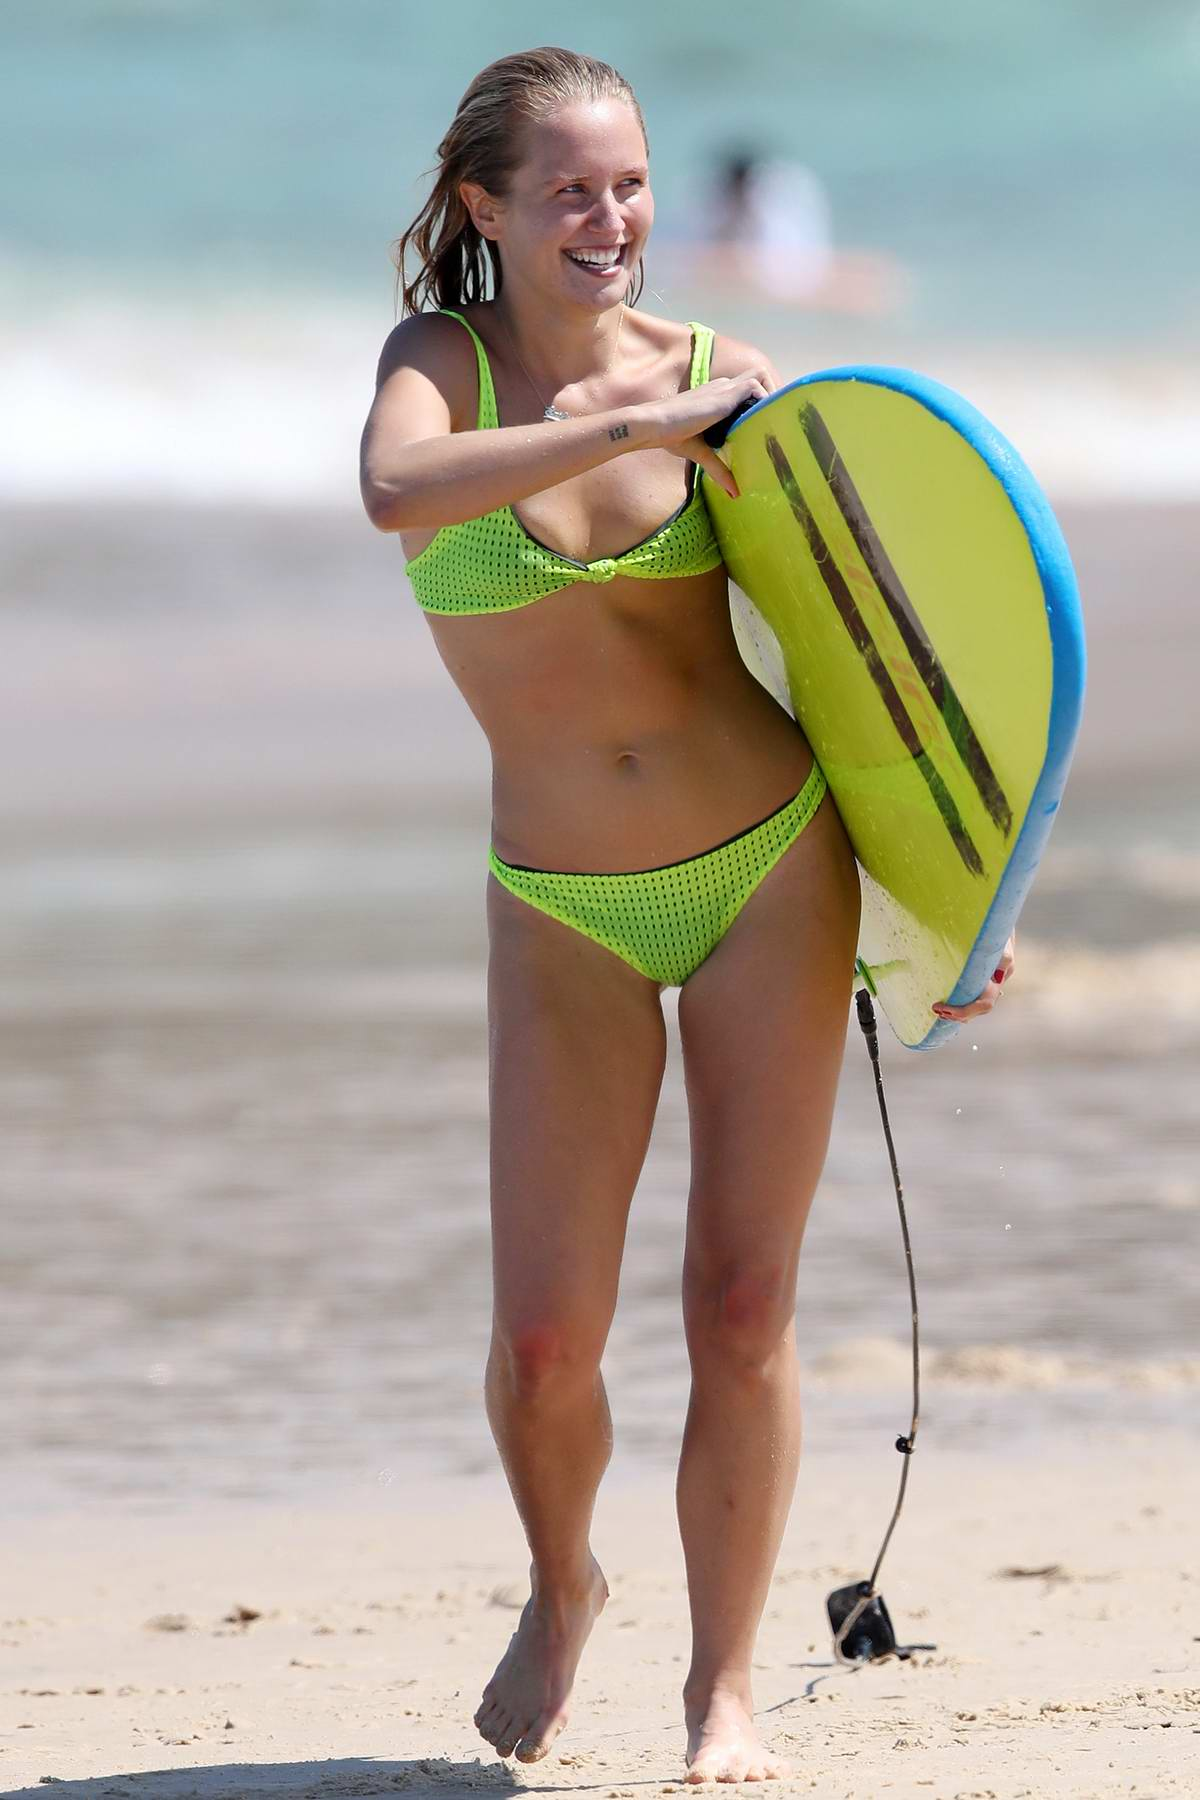 Sailor Brinkley-Cook enjoys a day of surfing in a neon green bikini at Bondi beach in Sydney, Australia